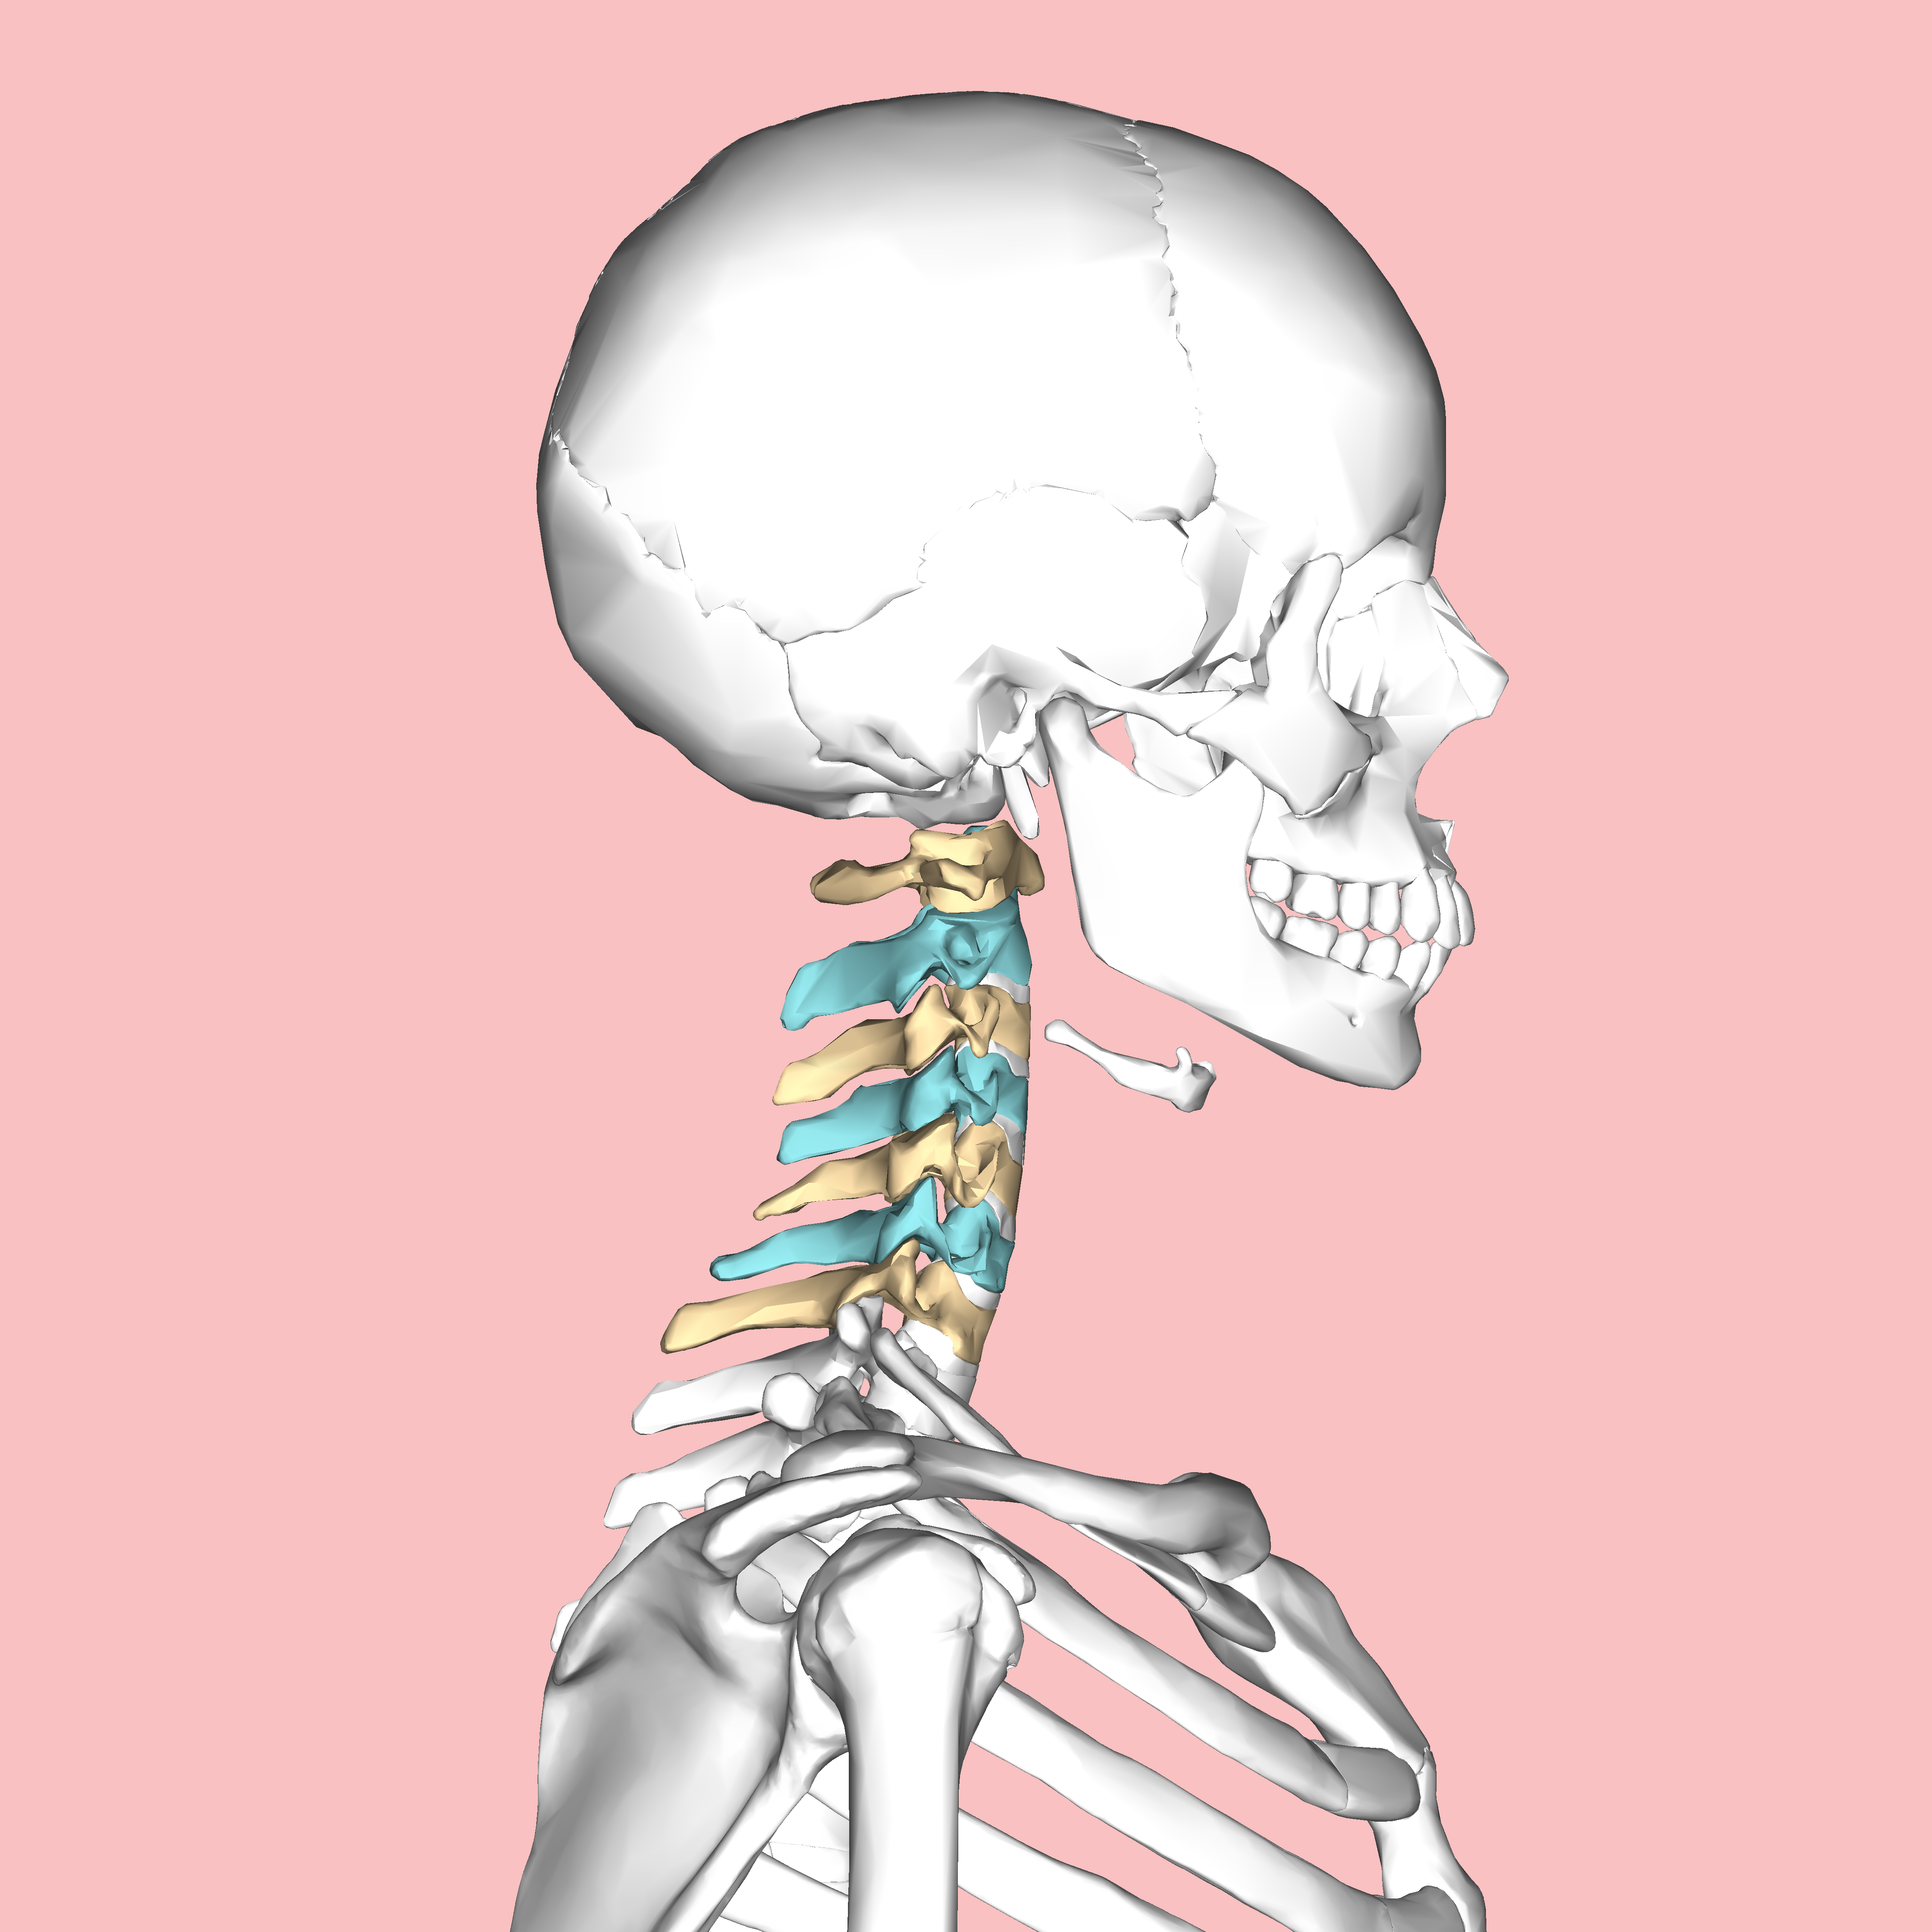 File:Cervical vertebrae lateral3.png - Wikimedia Commons